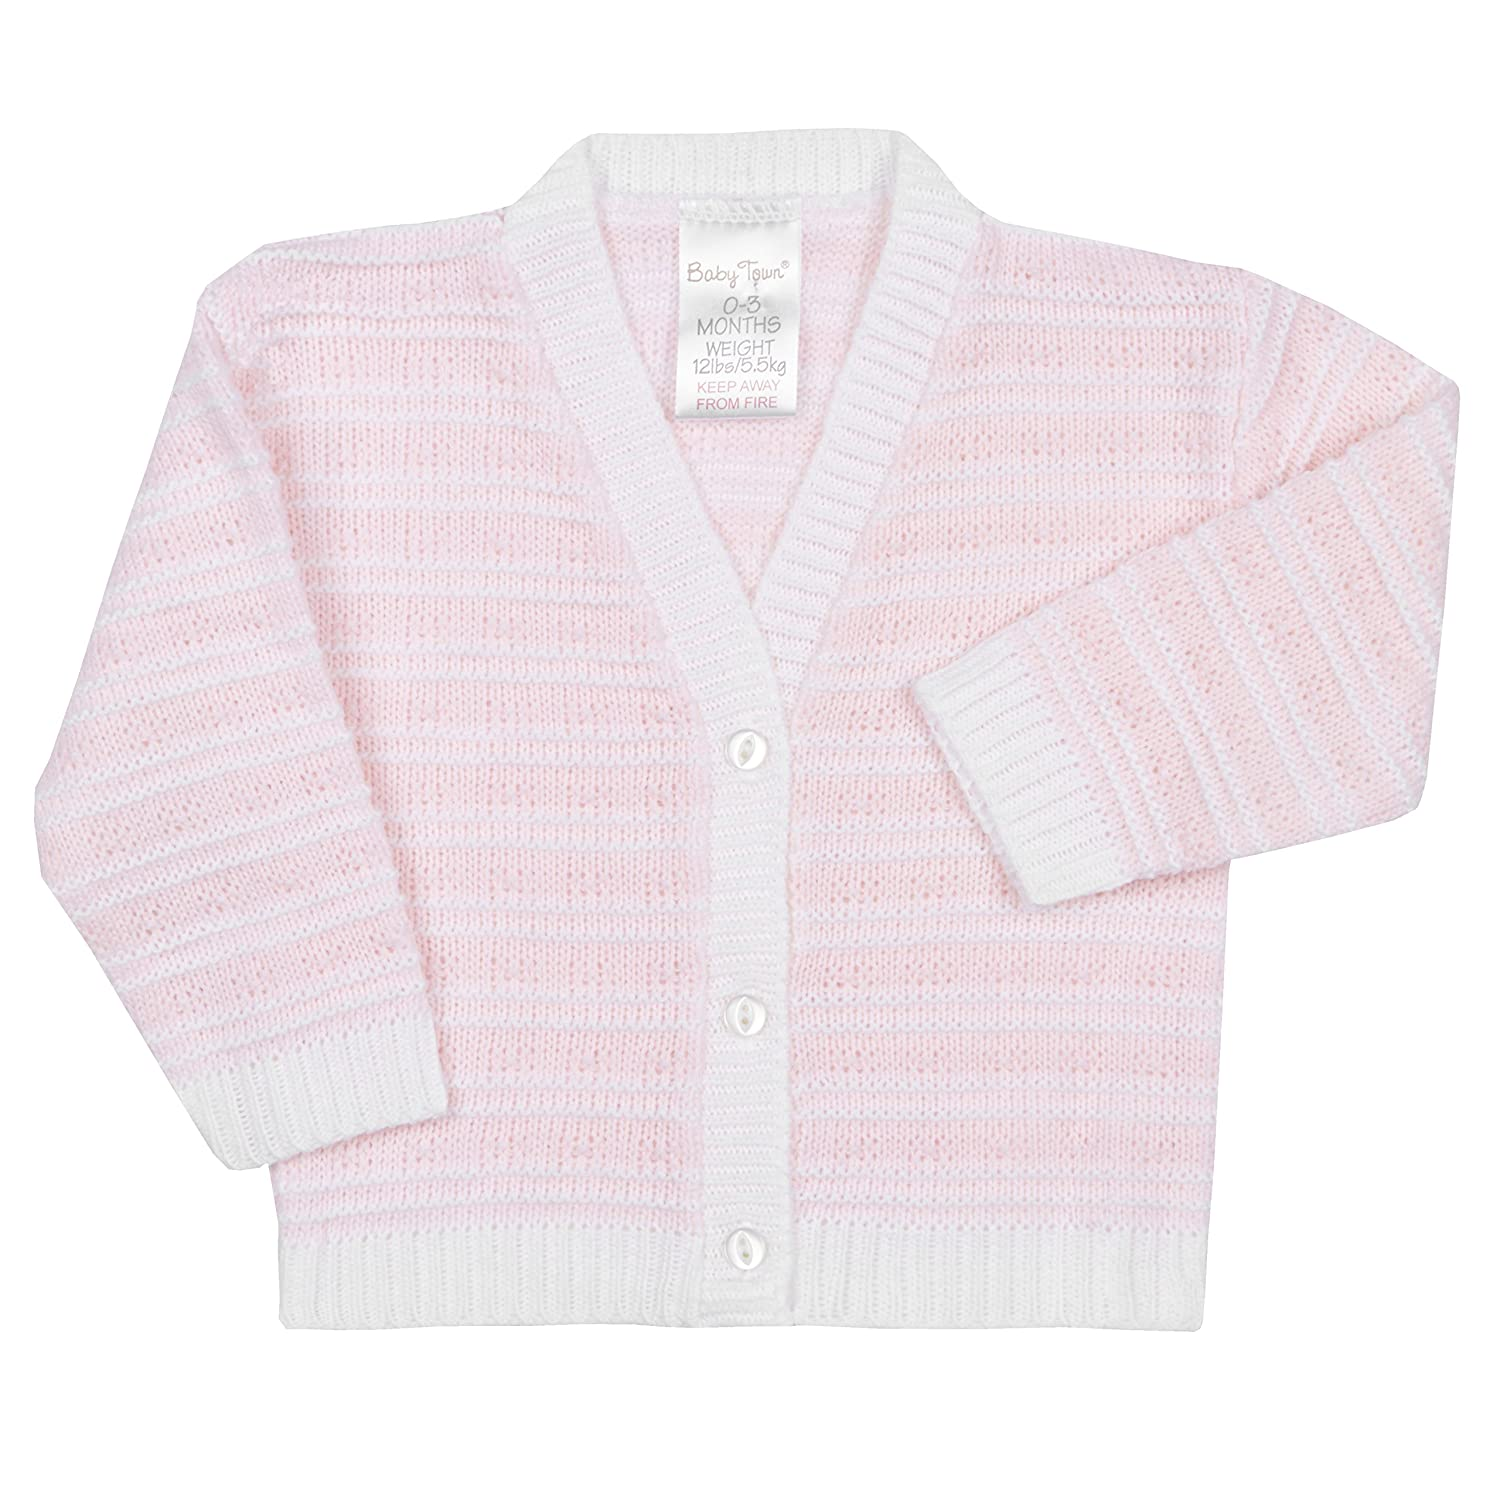 BABY TOWN Babies Baby Girls Boys Knitted Stripe Pastel Cardigan Button up NB-3 M BabyTown